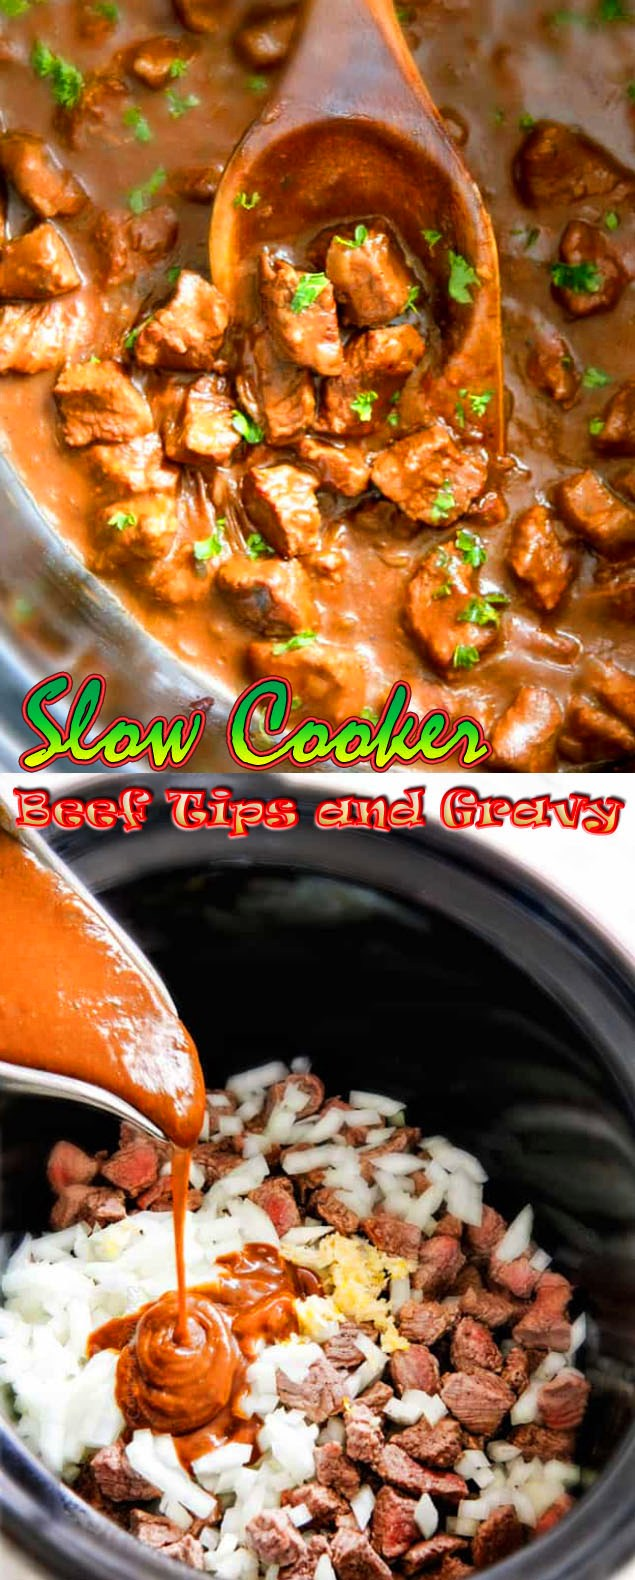 Slow Cooker Beef Tips and Gravy Recipe